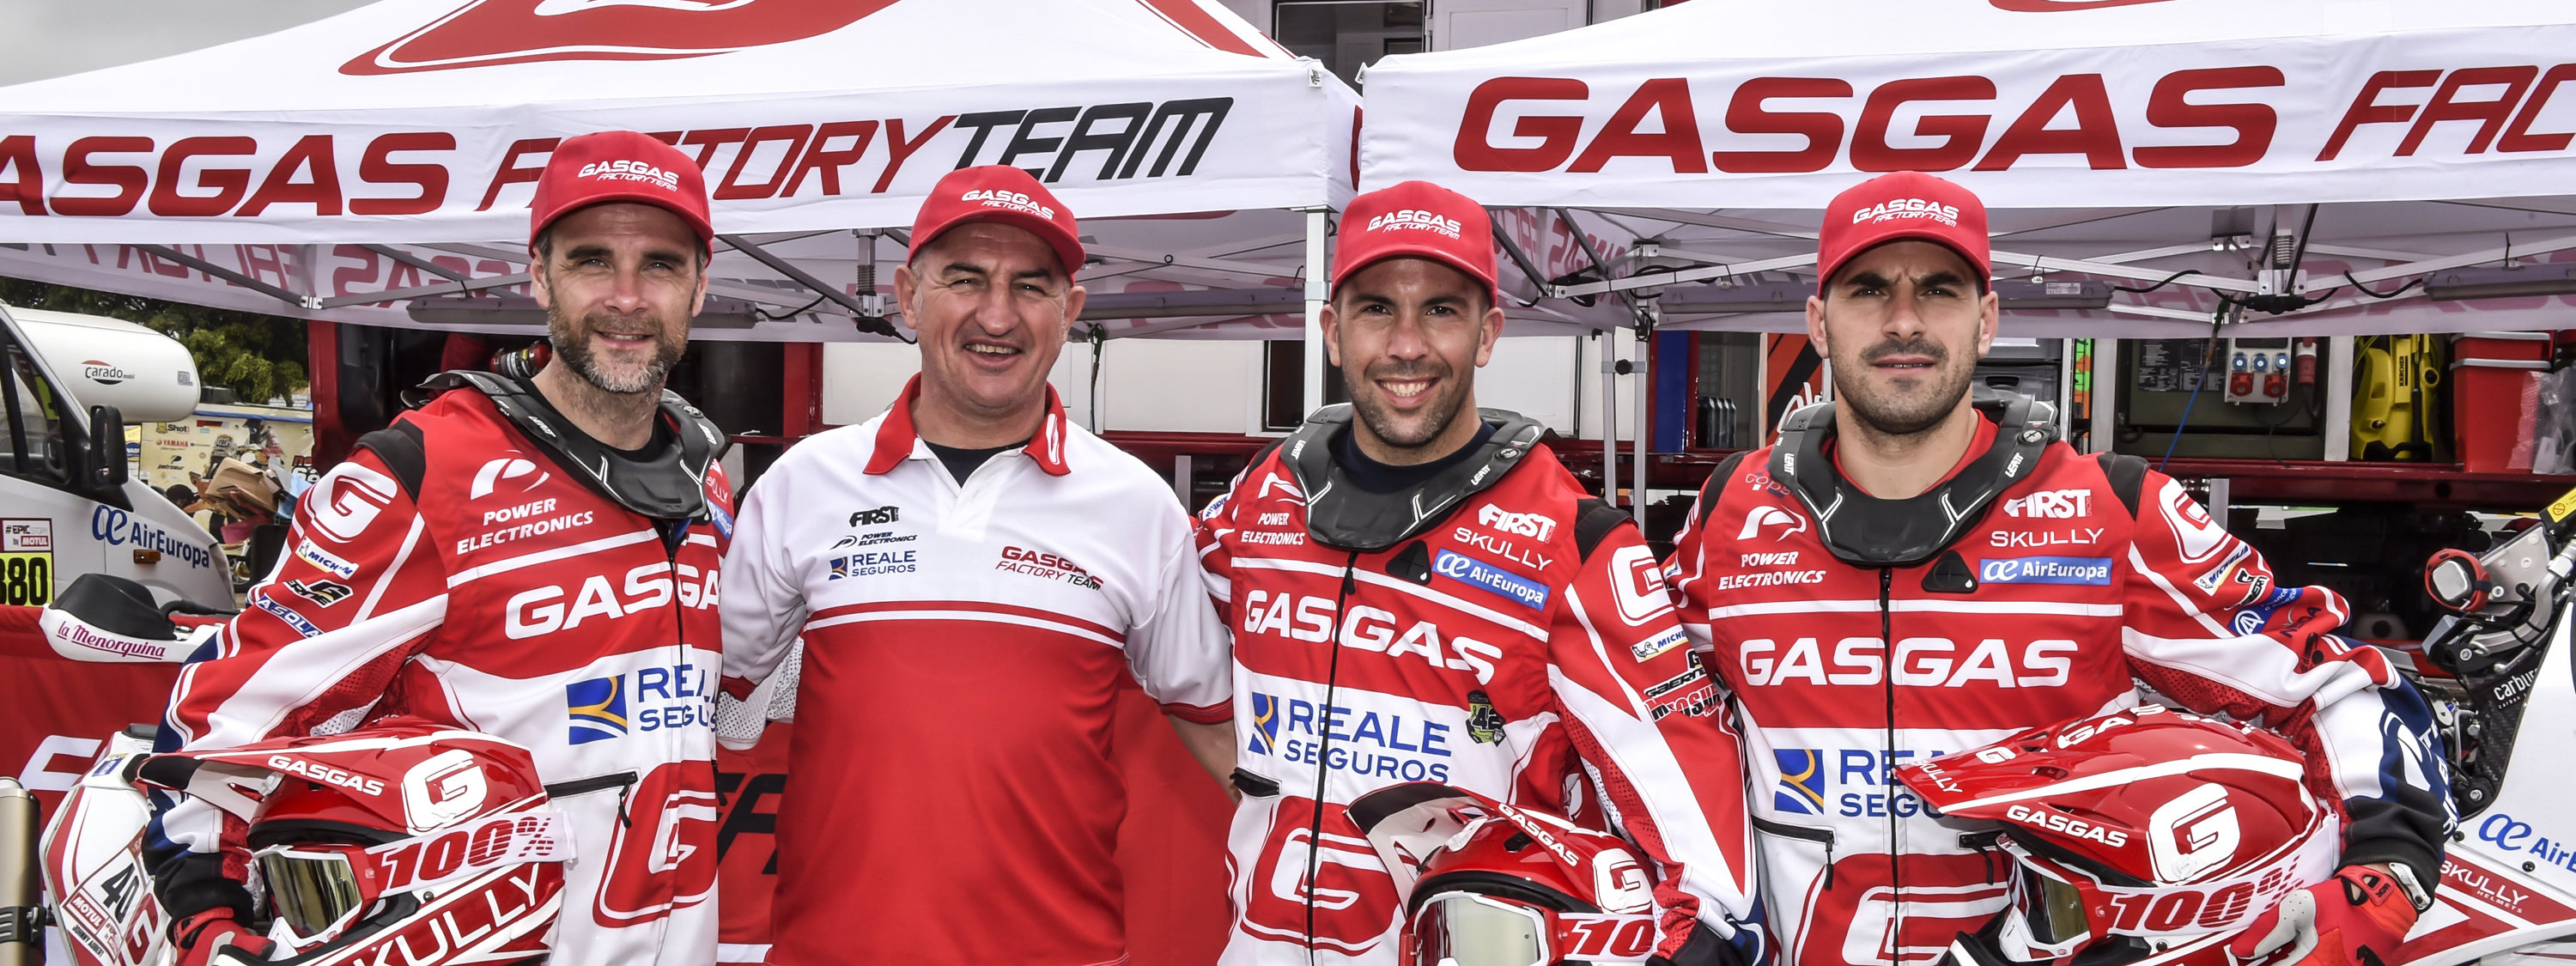 Torrot's GasGas Rally Team, ready for a return to the Dakar